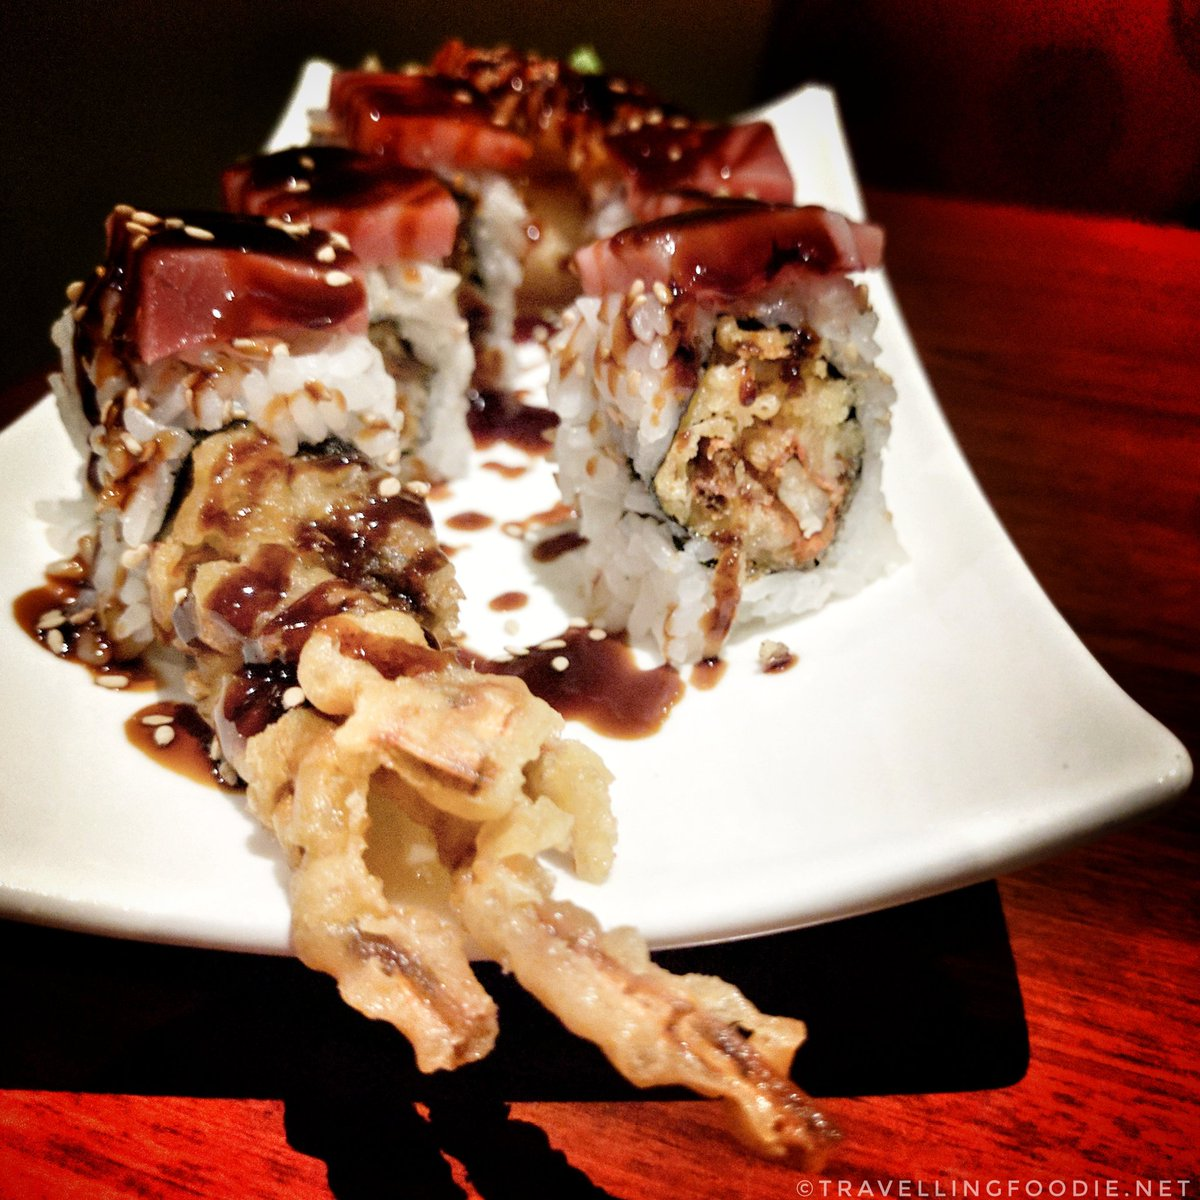 Travelling Foodie Eats Monte Carlo Roll at Dragon Noodle Co in Monte Carlo Las Vegas Nevada